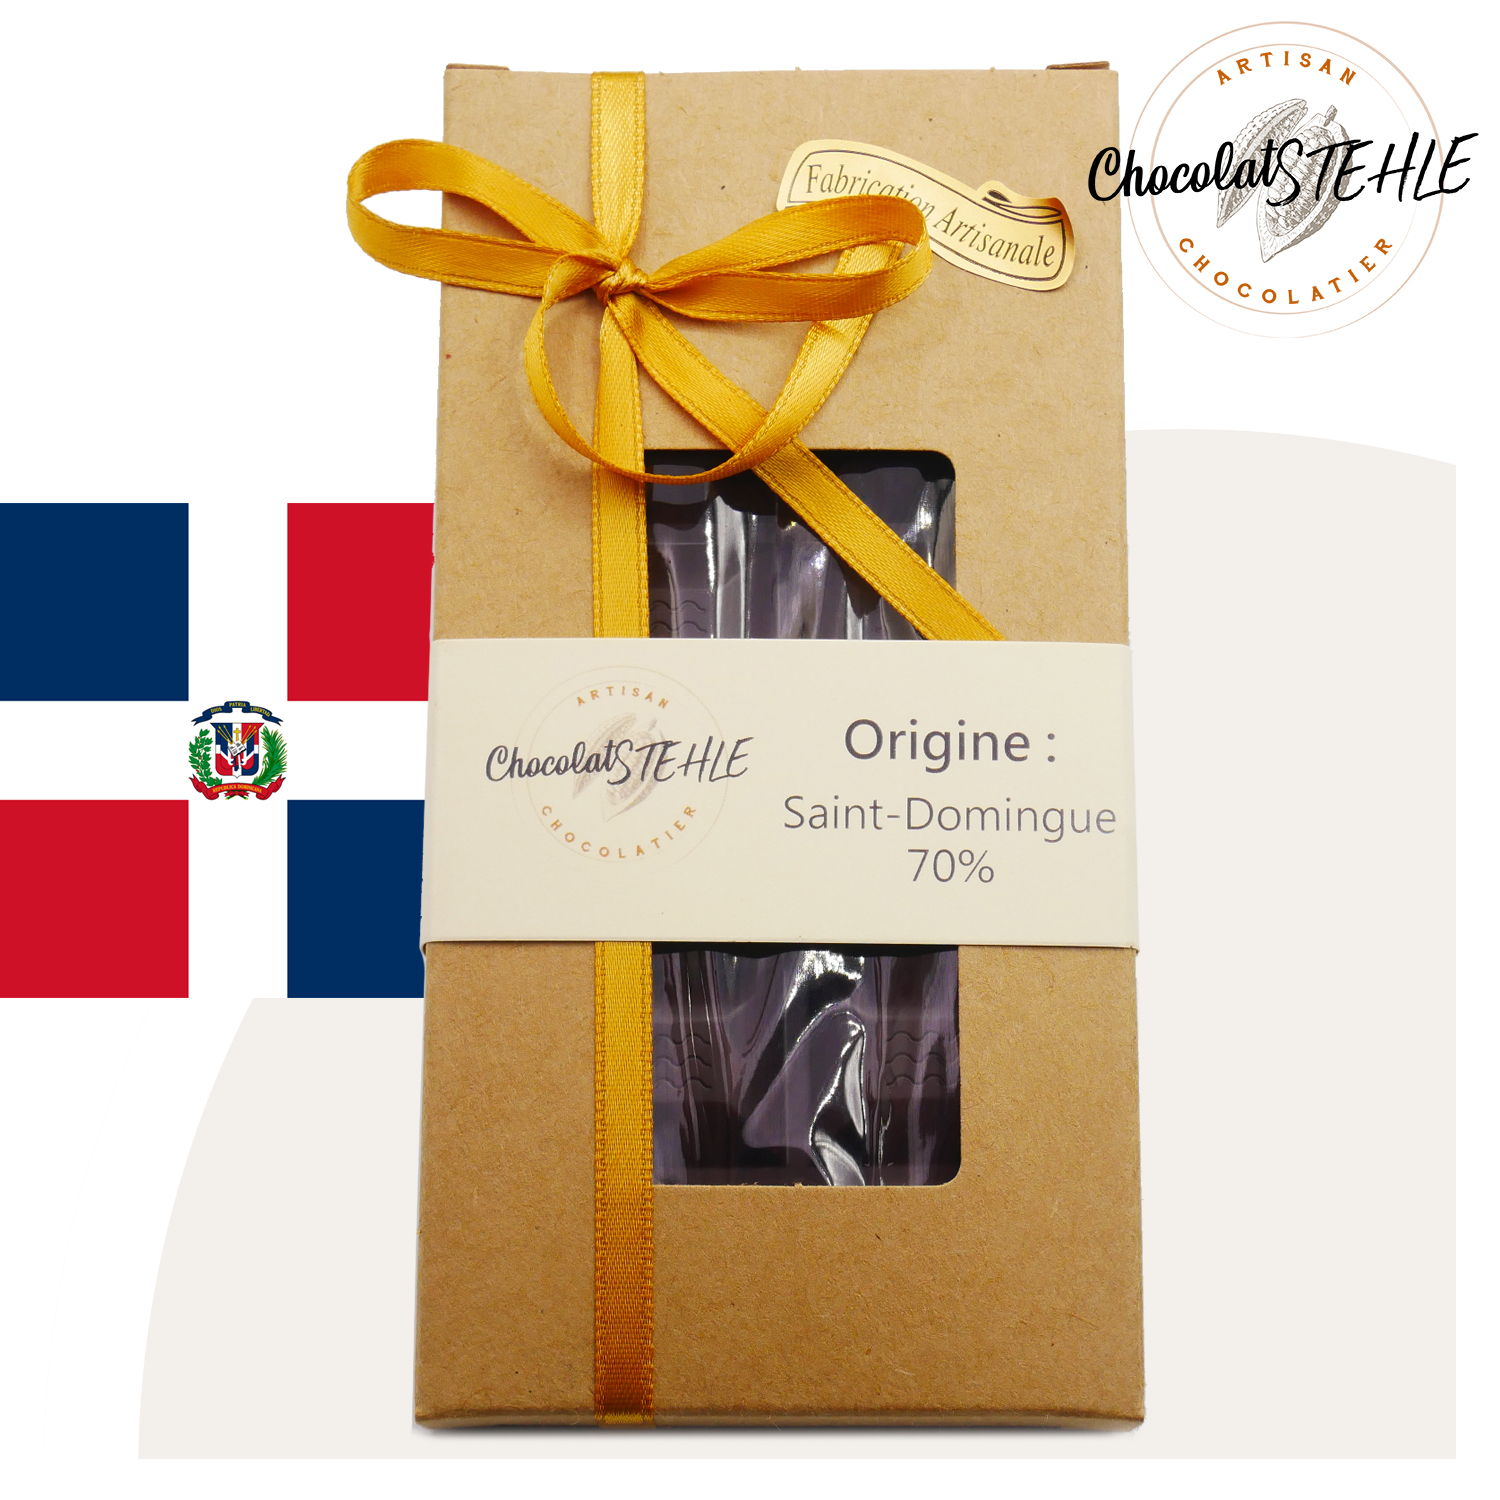 Tablette Origine: Saint-Domingue 70%